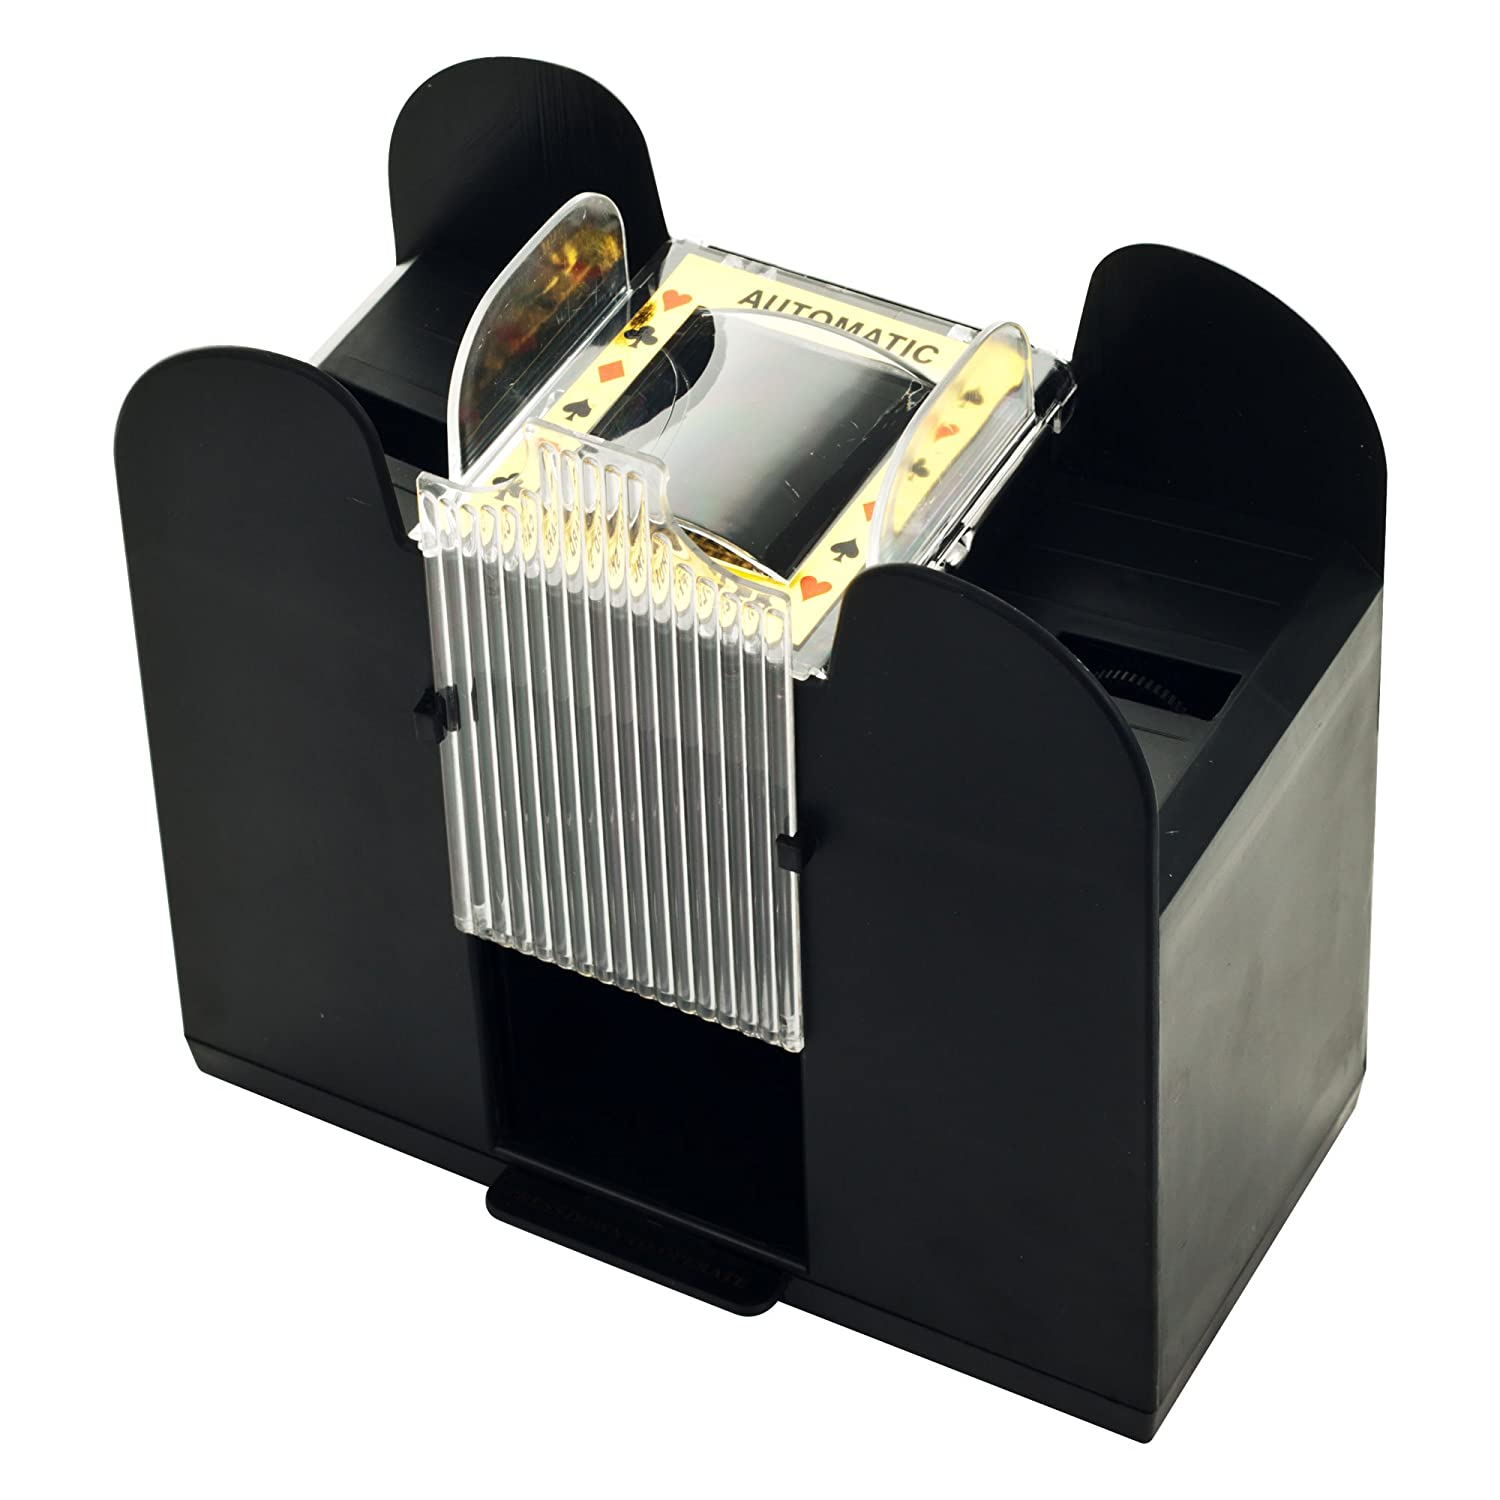 3 deck card shuffler